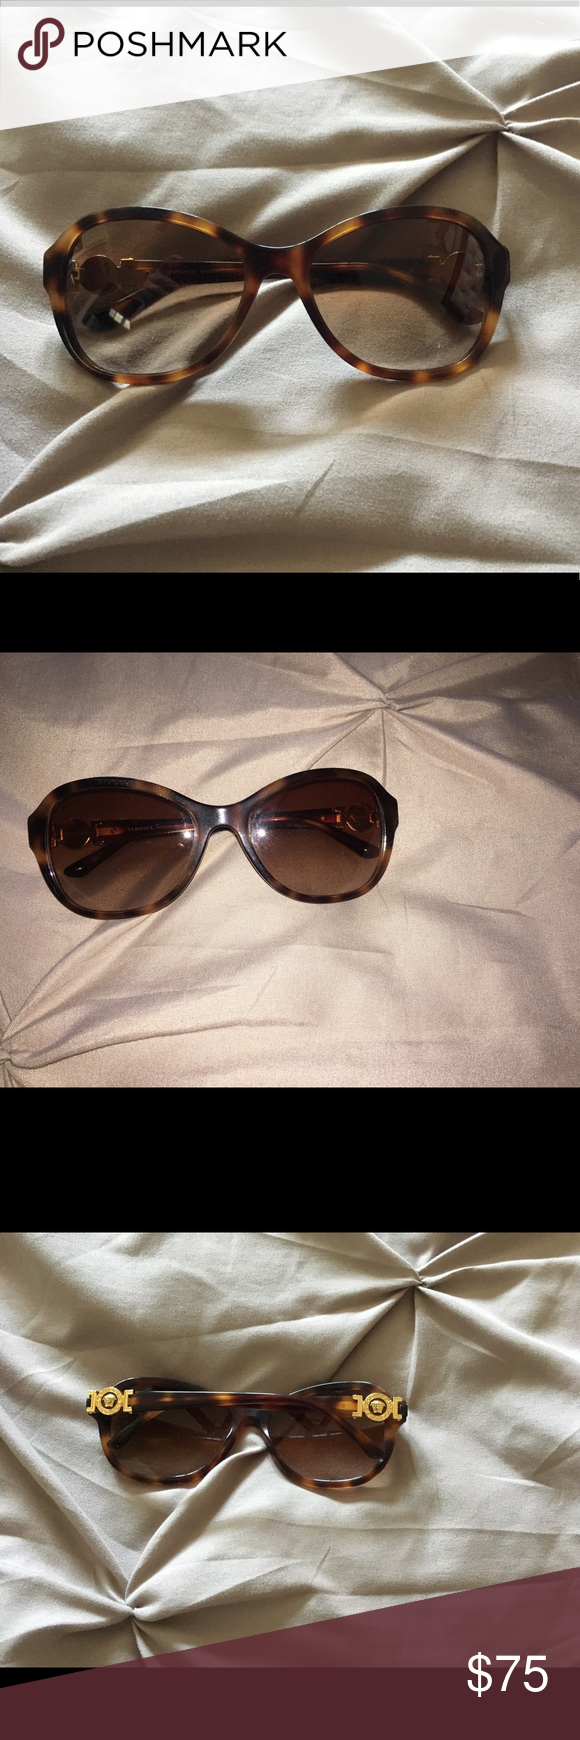 21321823e1d8 Spotted while shopping on Poshmark  Gently used Versace Sunglasses!   poshmark  fashion  shopping  style  Versace  Accessories